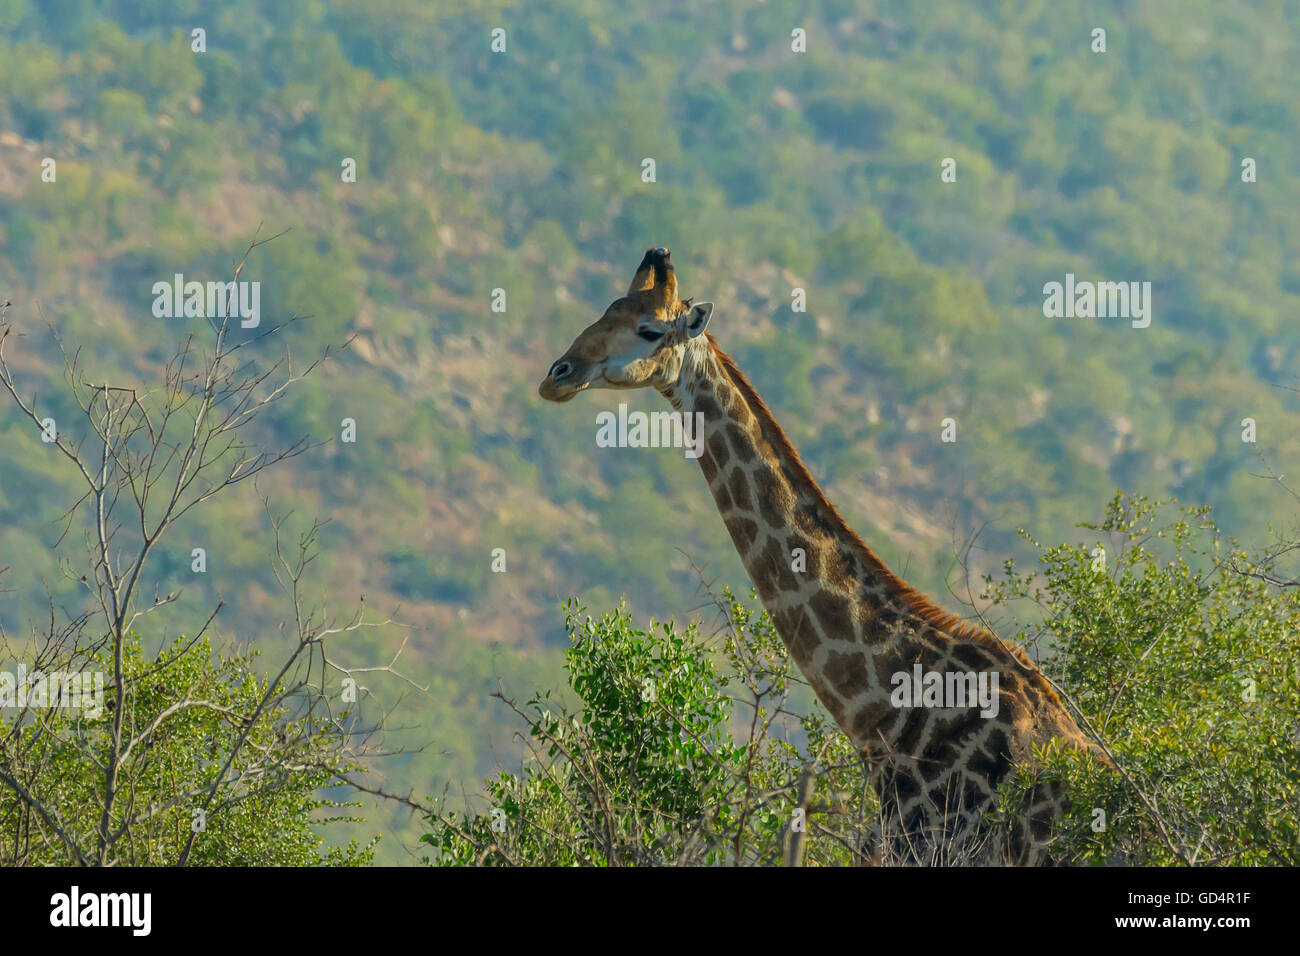 Giraffe sticking its head out from the trees in the bush Stock Photo